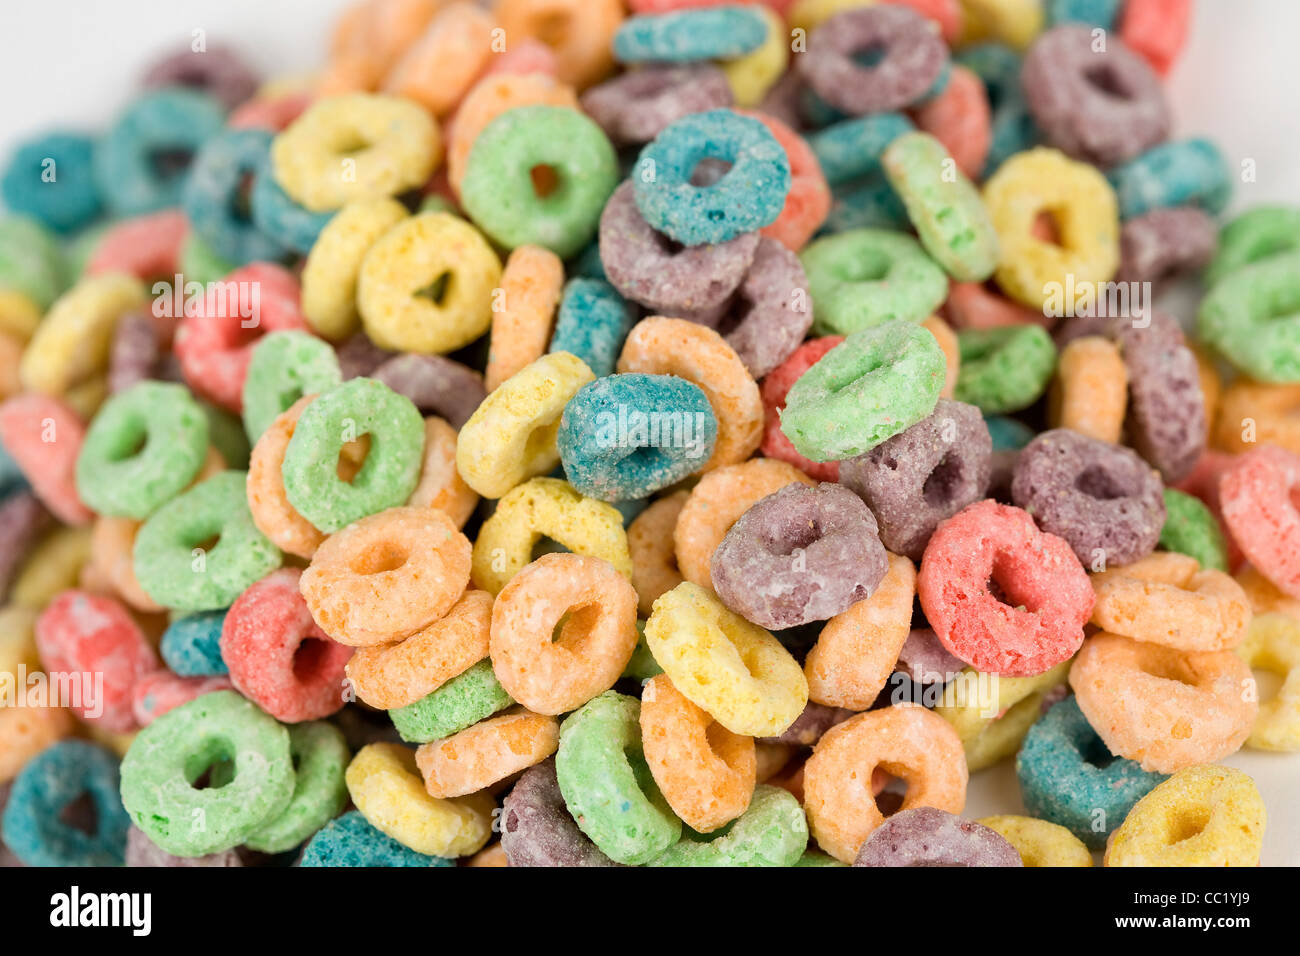 fruit loops stock photos fruit loops stock images alamy